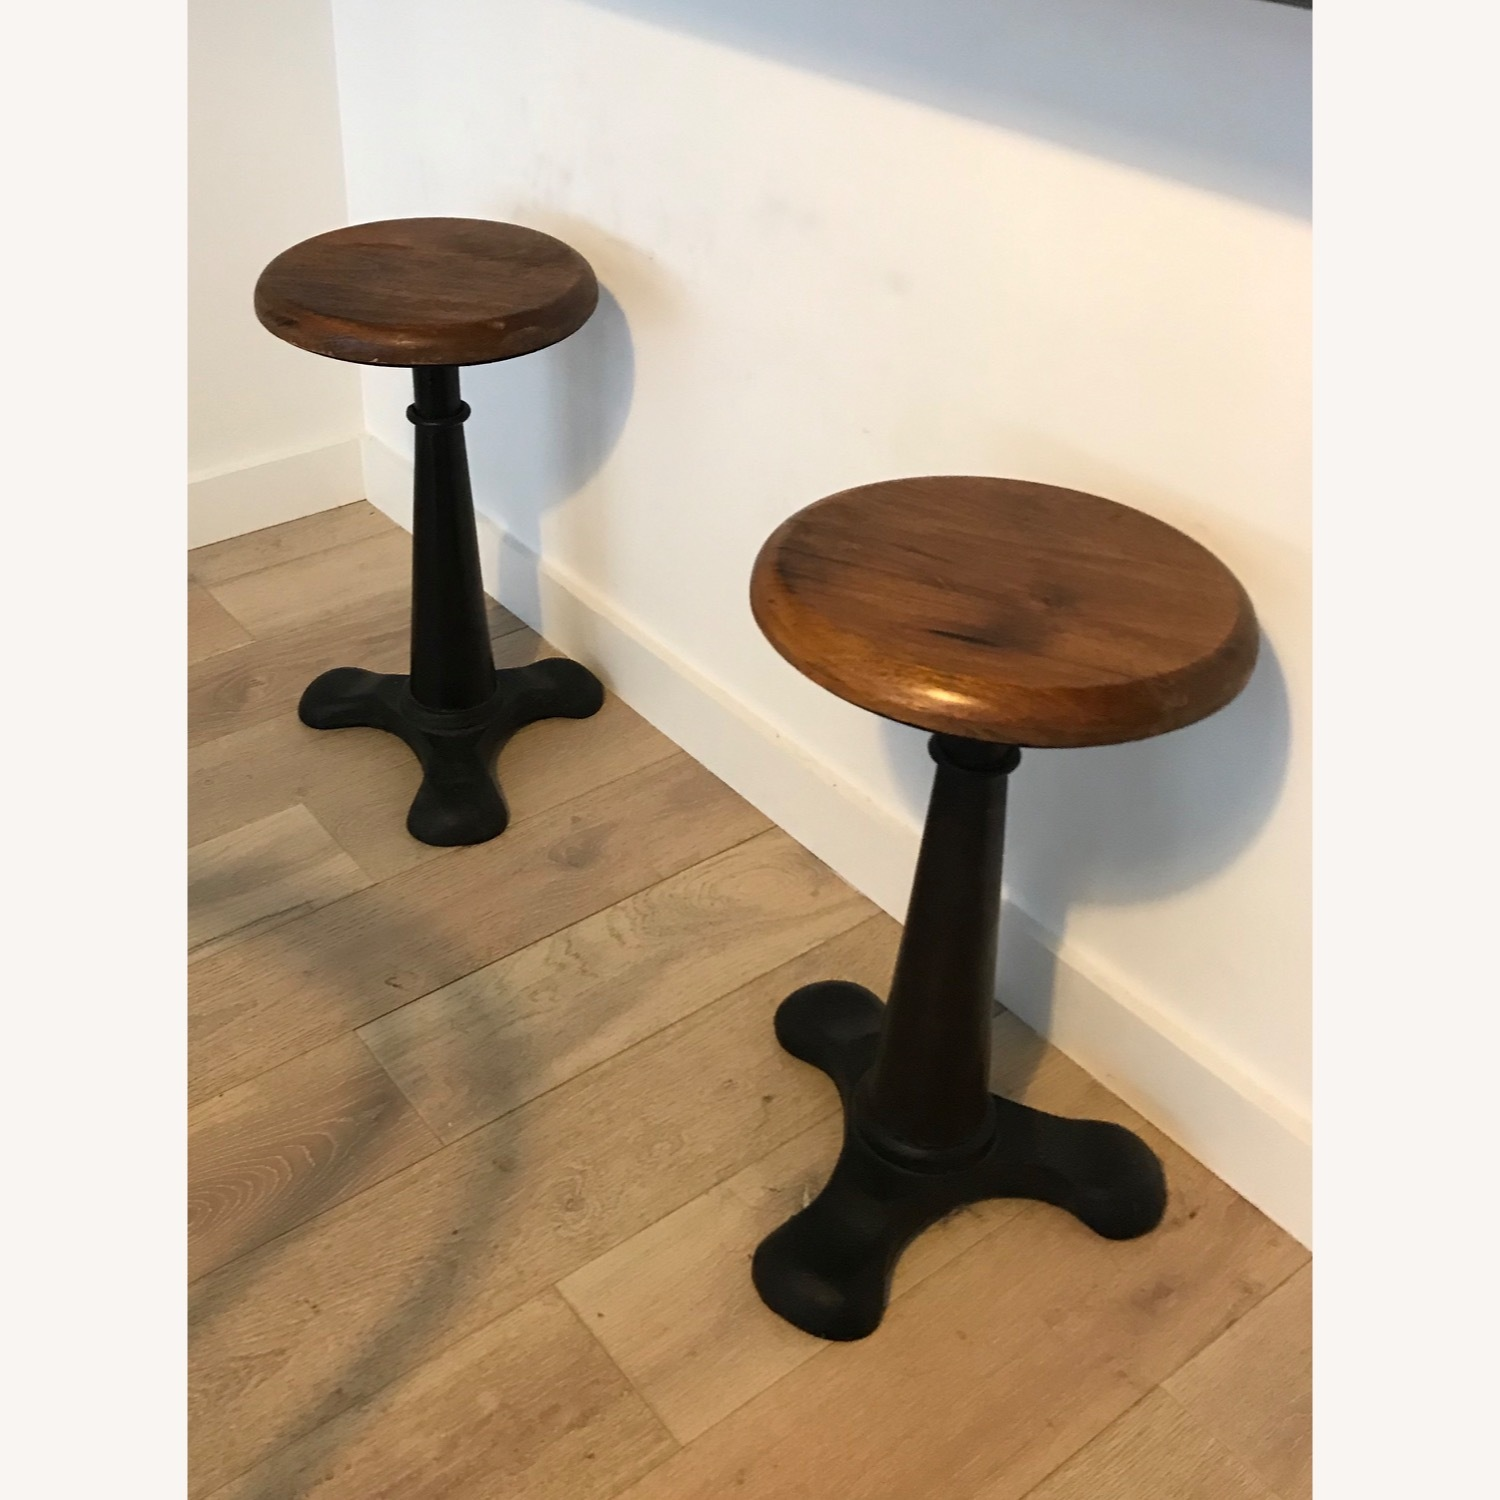 Set of Vintage Bar Stools - image-1